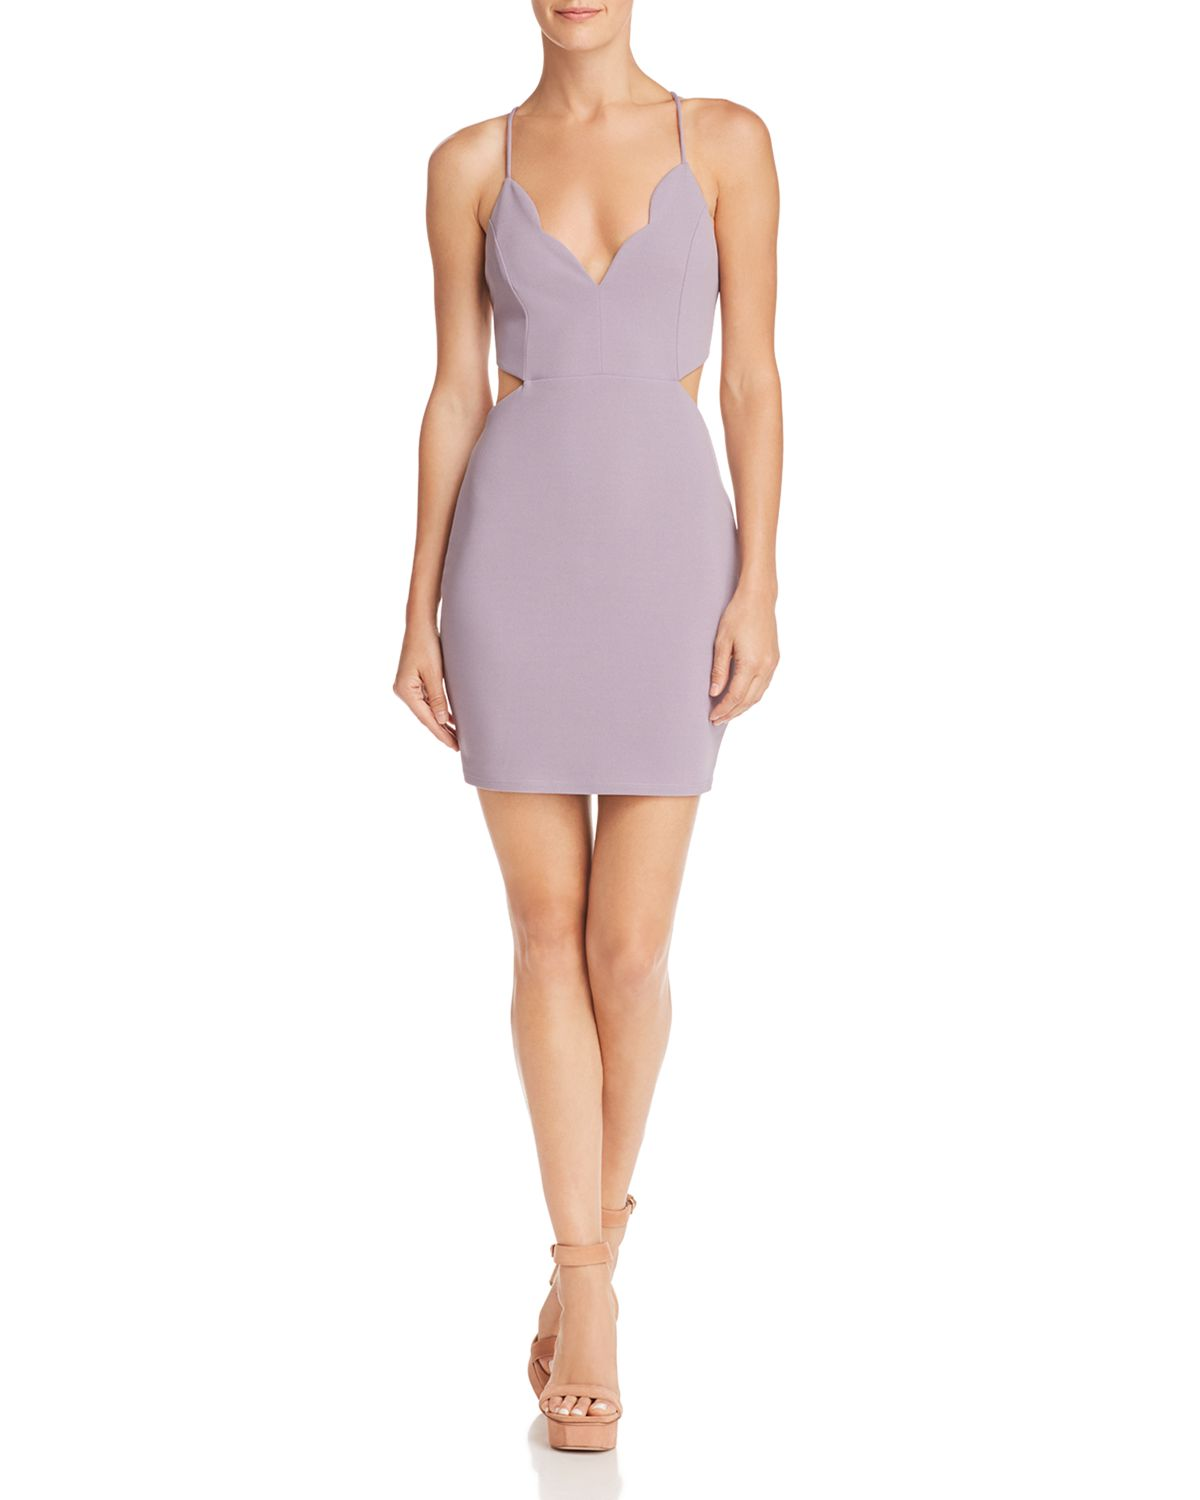 Scalloped Cutout Dress   100 Percents Exclusive by Sunset & Spring